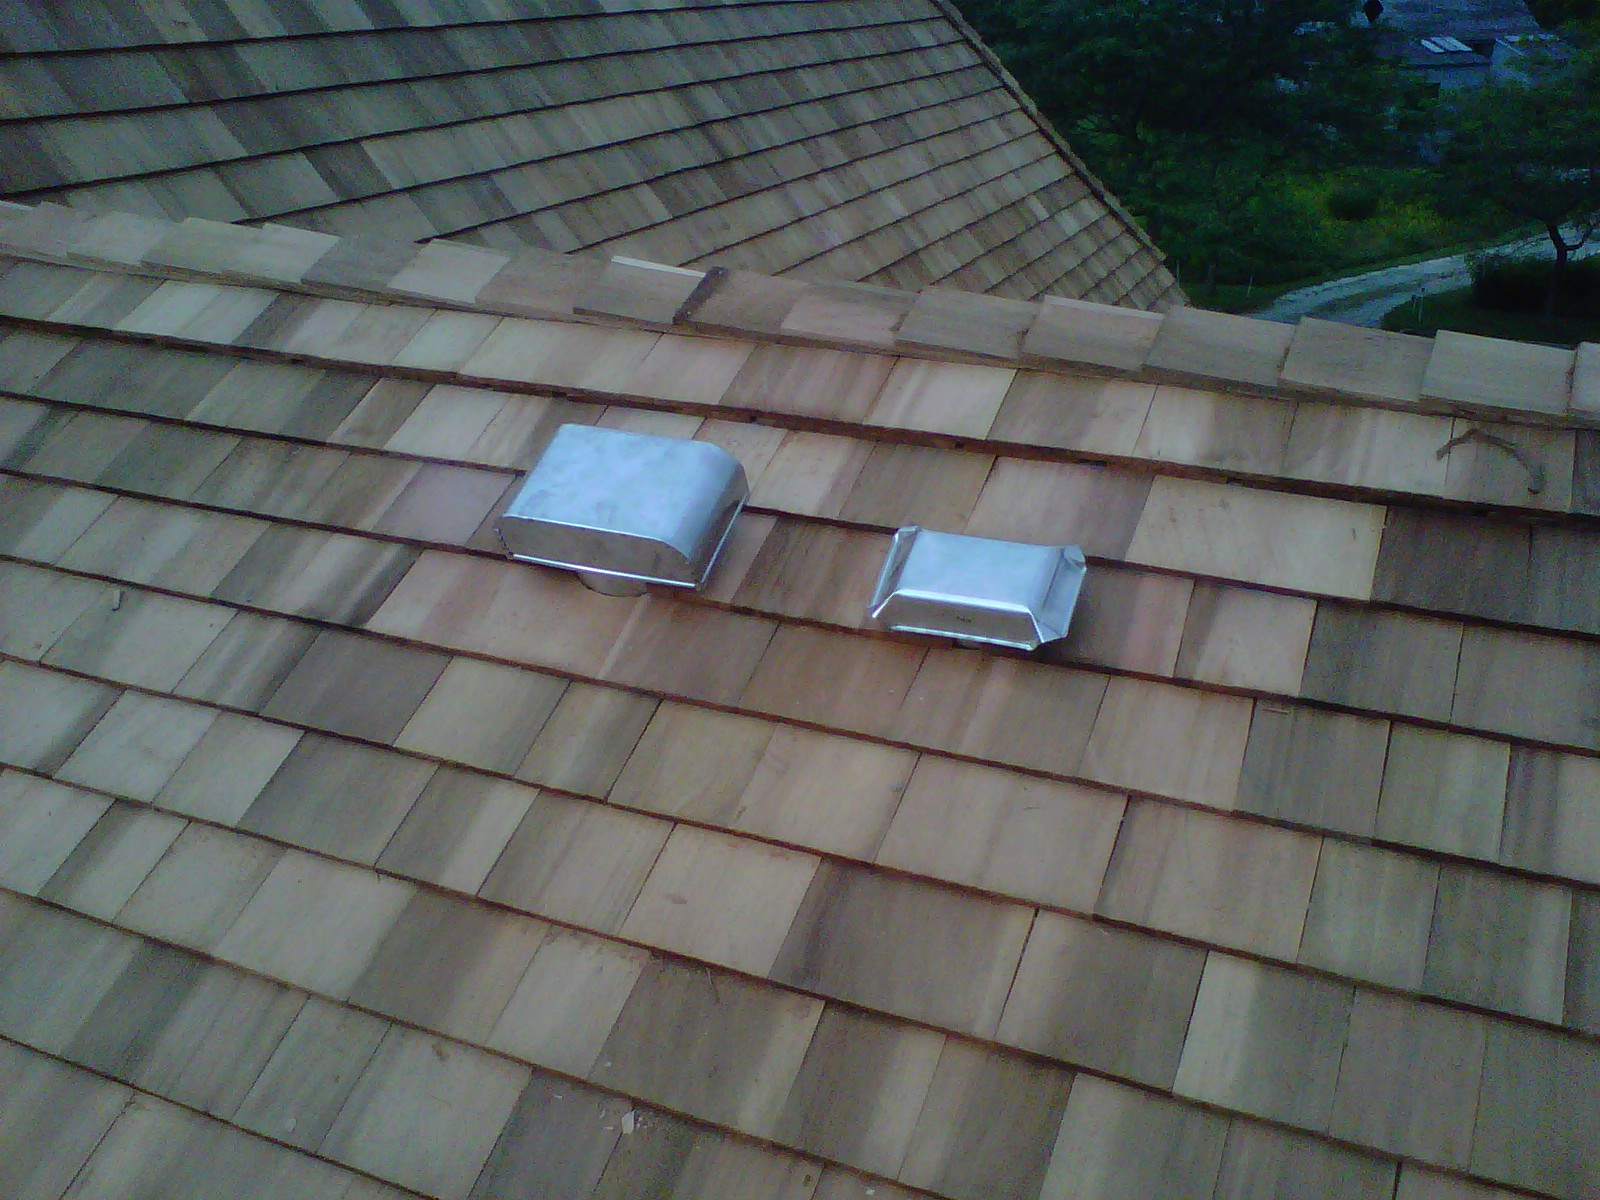 Stainless Steel Roof Vents On Shake Roof